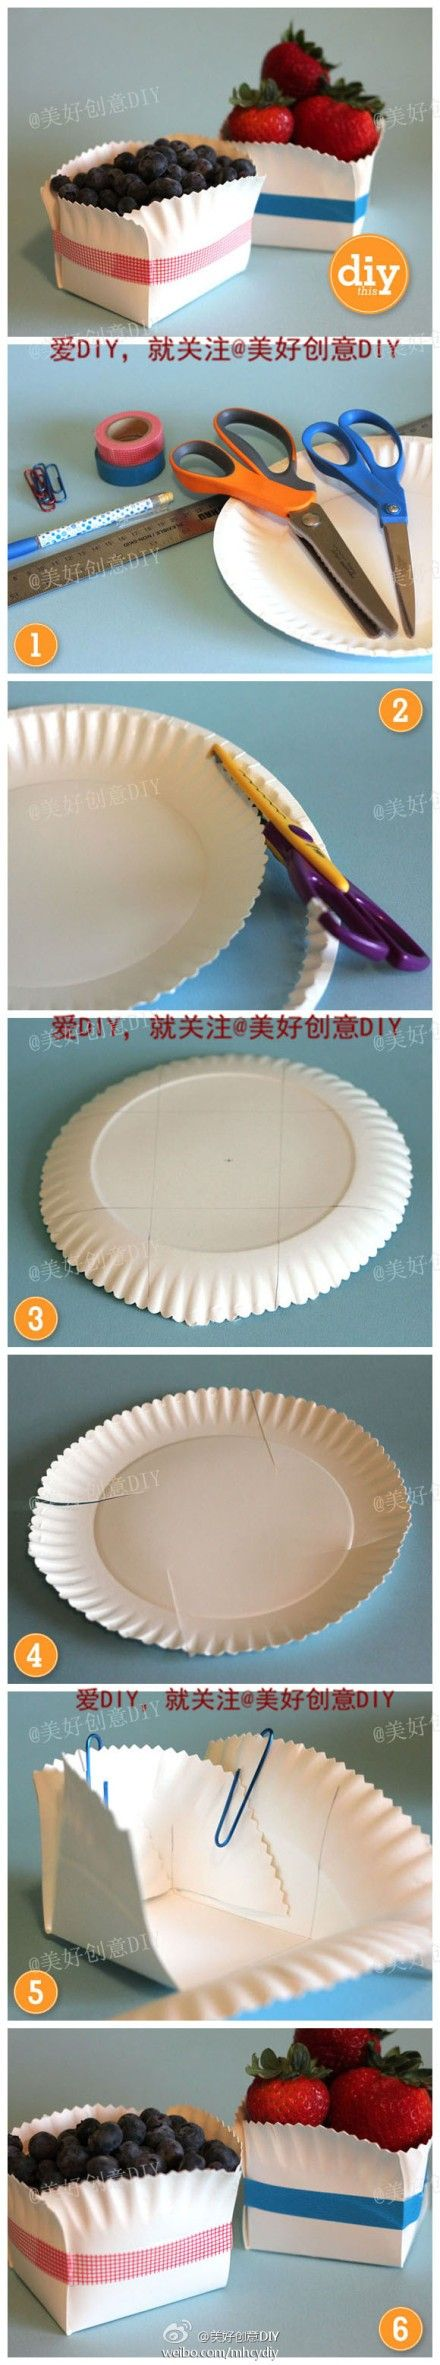 paper plate boxesIdeas, Gift Boxes, Diy Crafts, Parties, Plates Boxes, Baskets, Paper Boxes, Washi Tape, Paper Plates